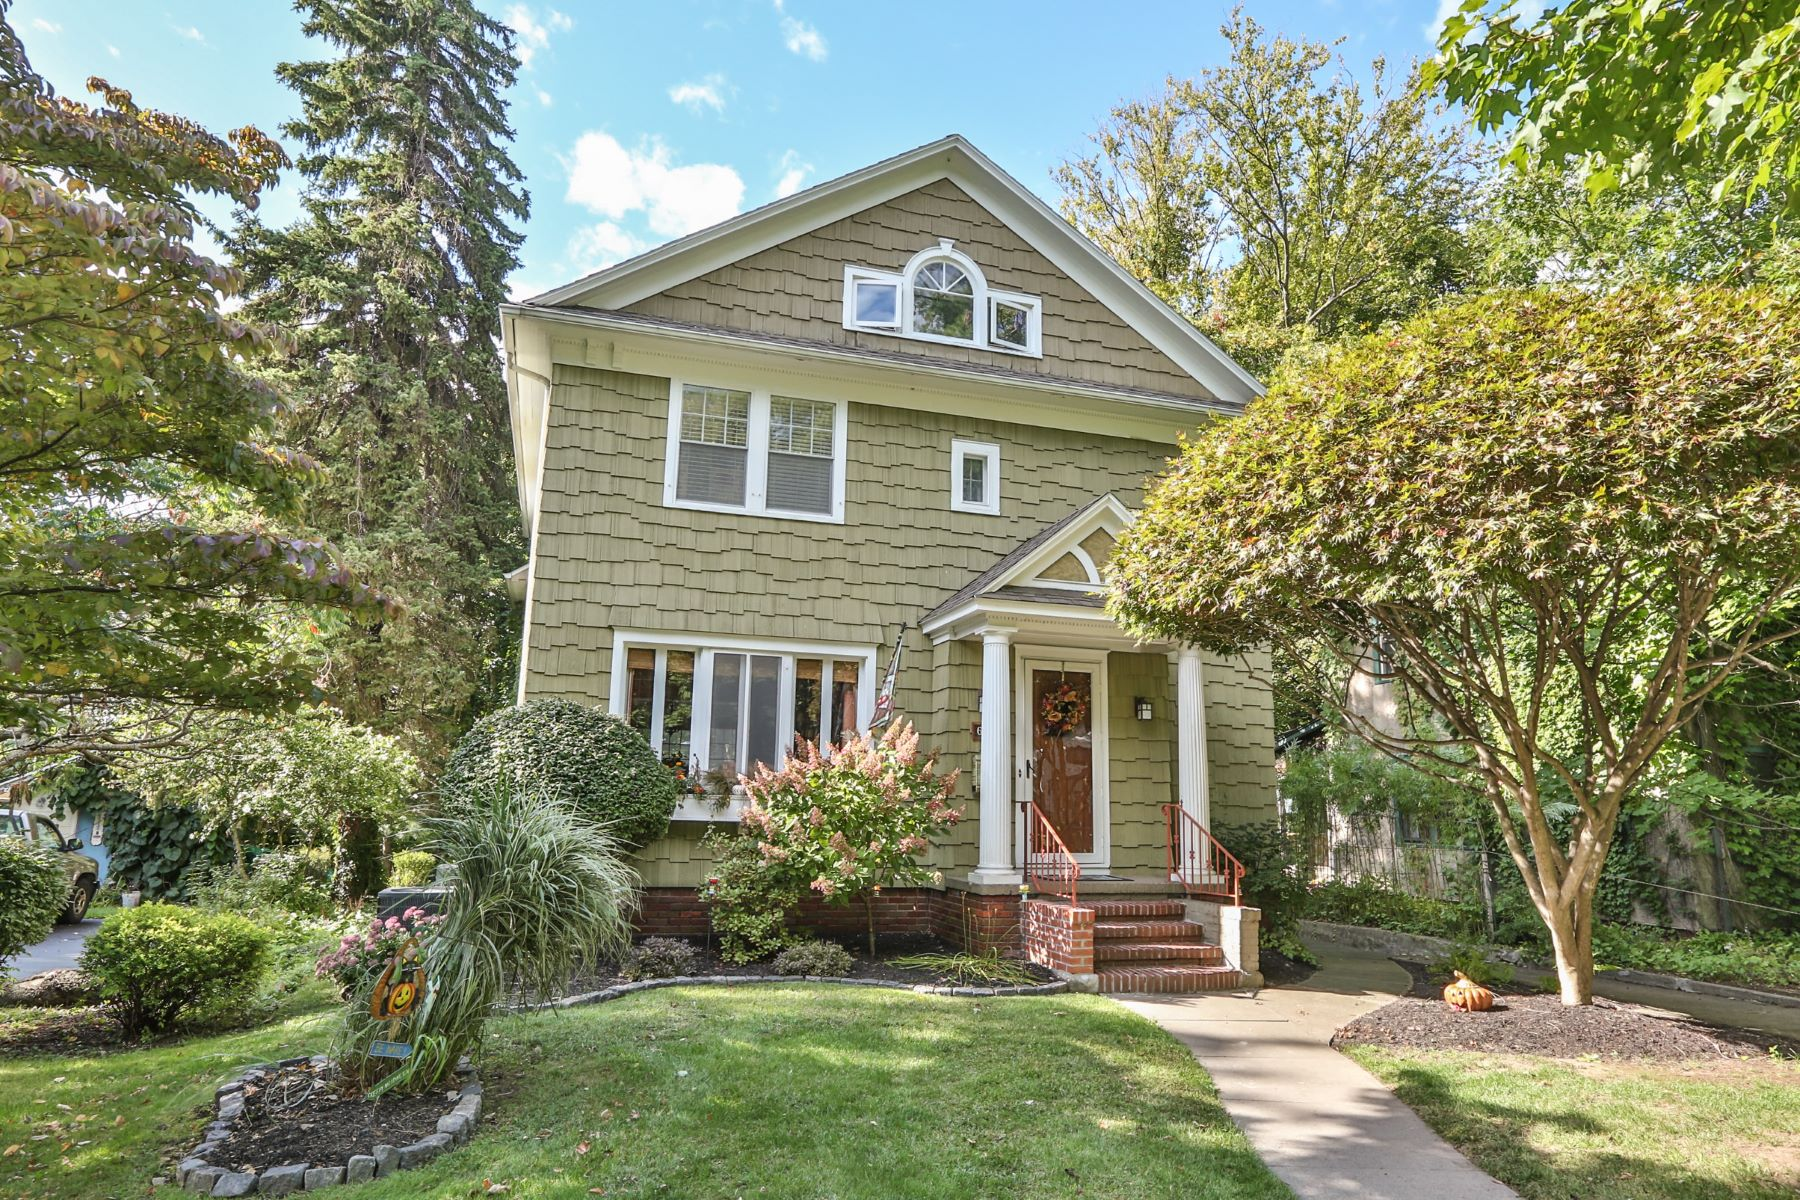 Single Family Homes for Sale at Modern Convenience Meets Old World Charm 607 Winona Boulevard Irondequoit, New York 14617 United States